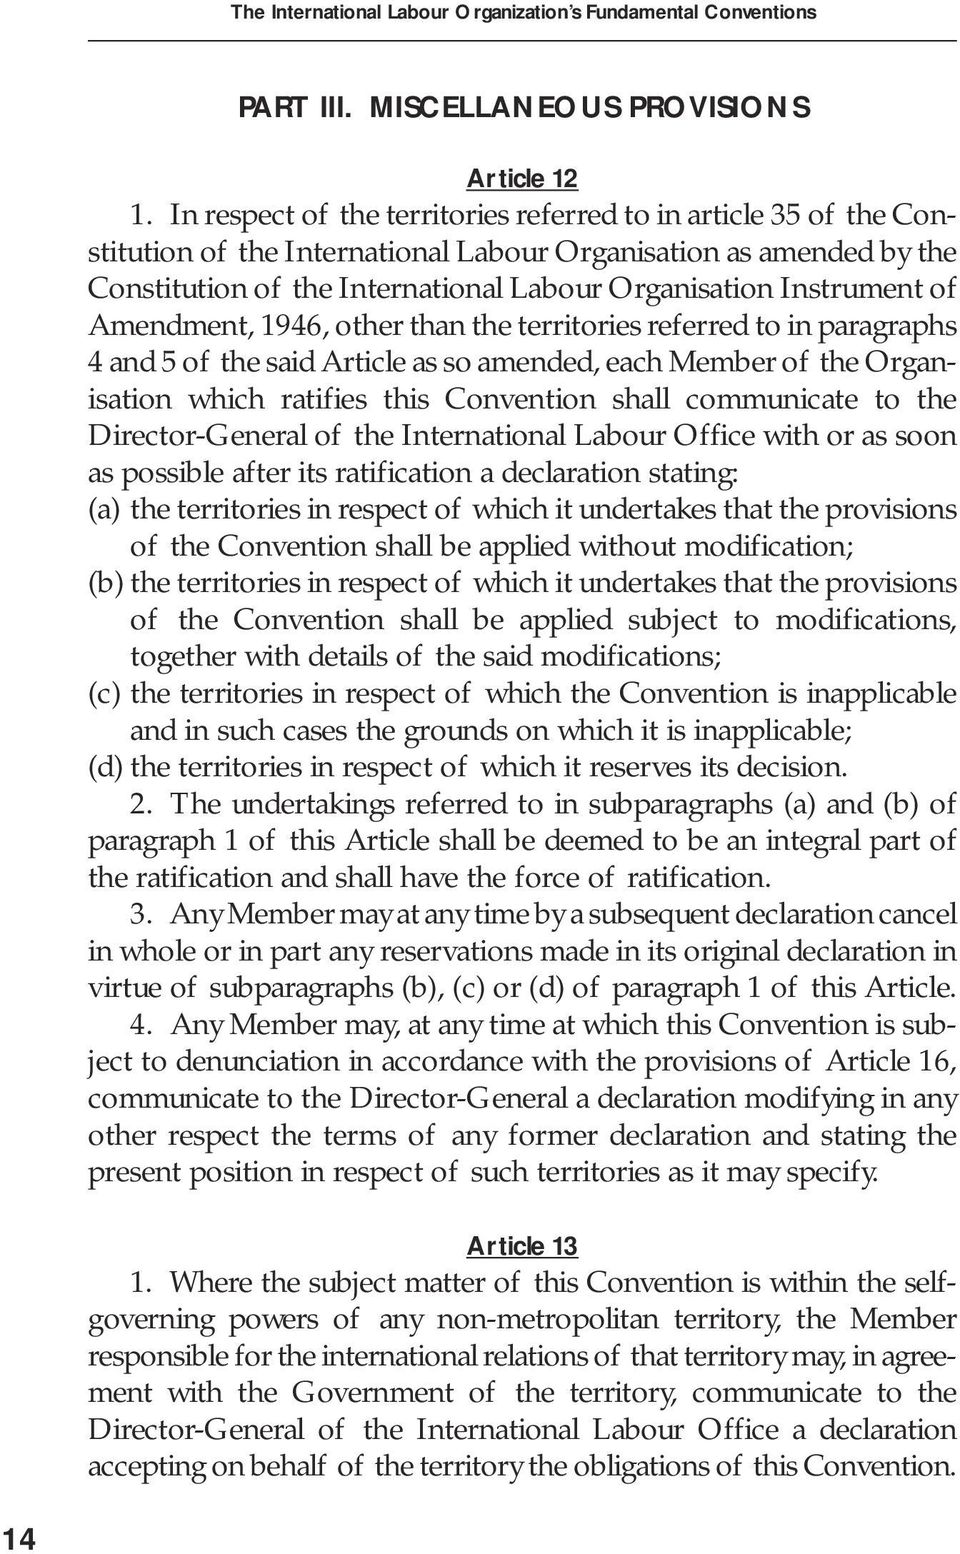 of Amendment, 1946, other than the territories referred to in paragraphs 4 and 5 of the said Article as so amended, each Member of the Organisation which ratifies this Convention shall communicate to